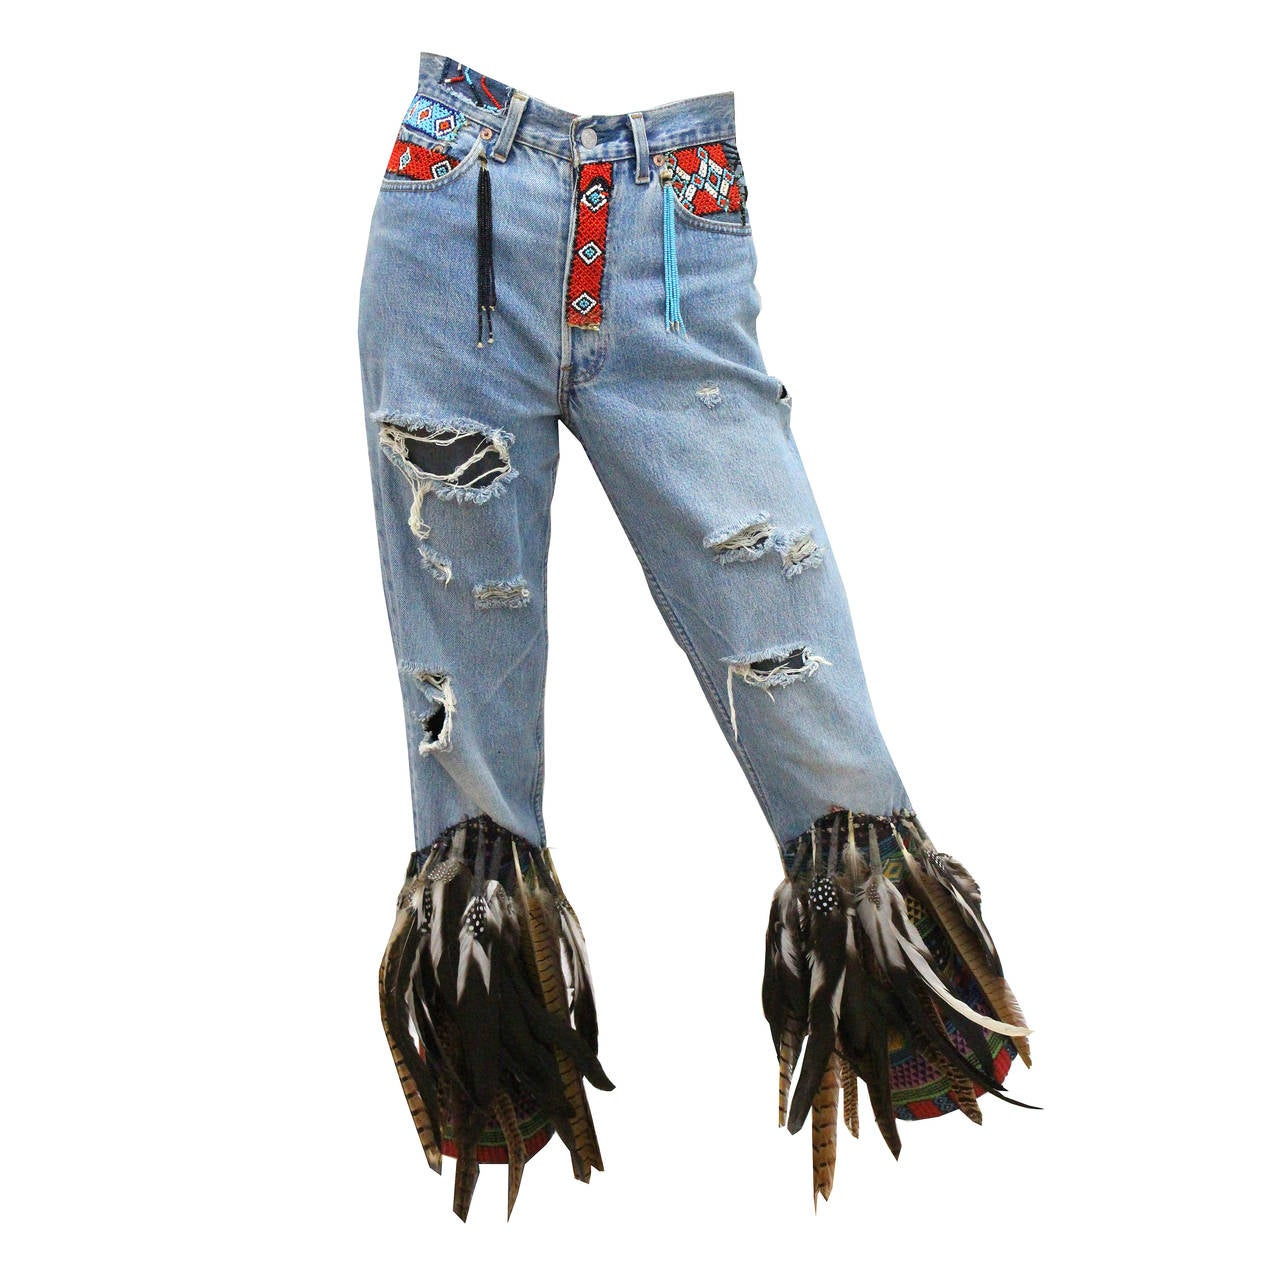 f4d3ec4fbc16 Iconic Tom Ford for Gucci Spring Summer 1999 feather denim jeans For Sale